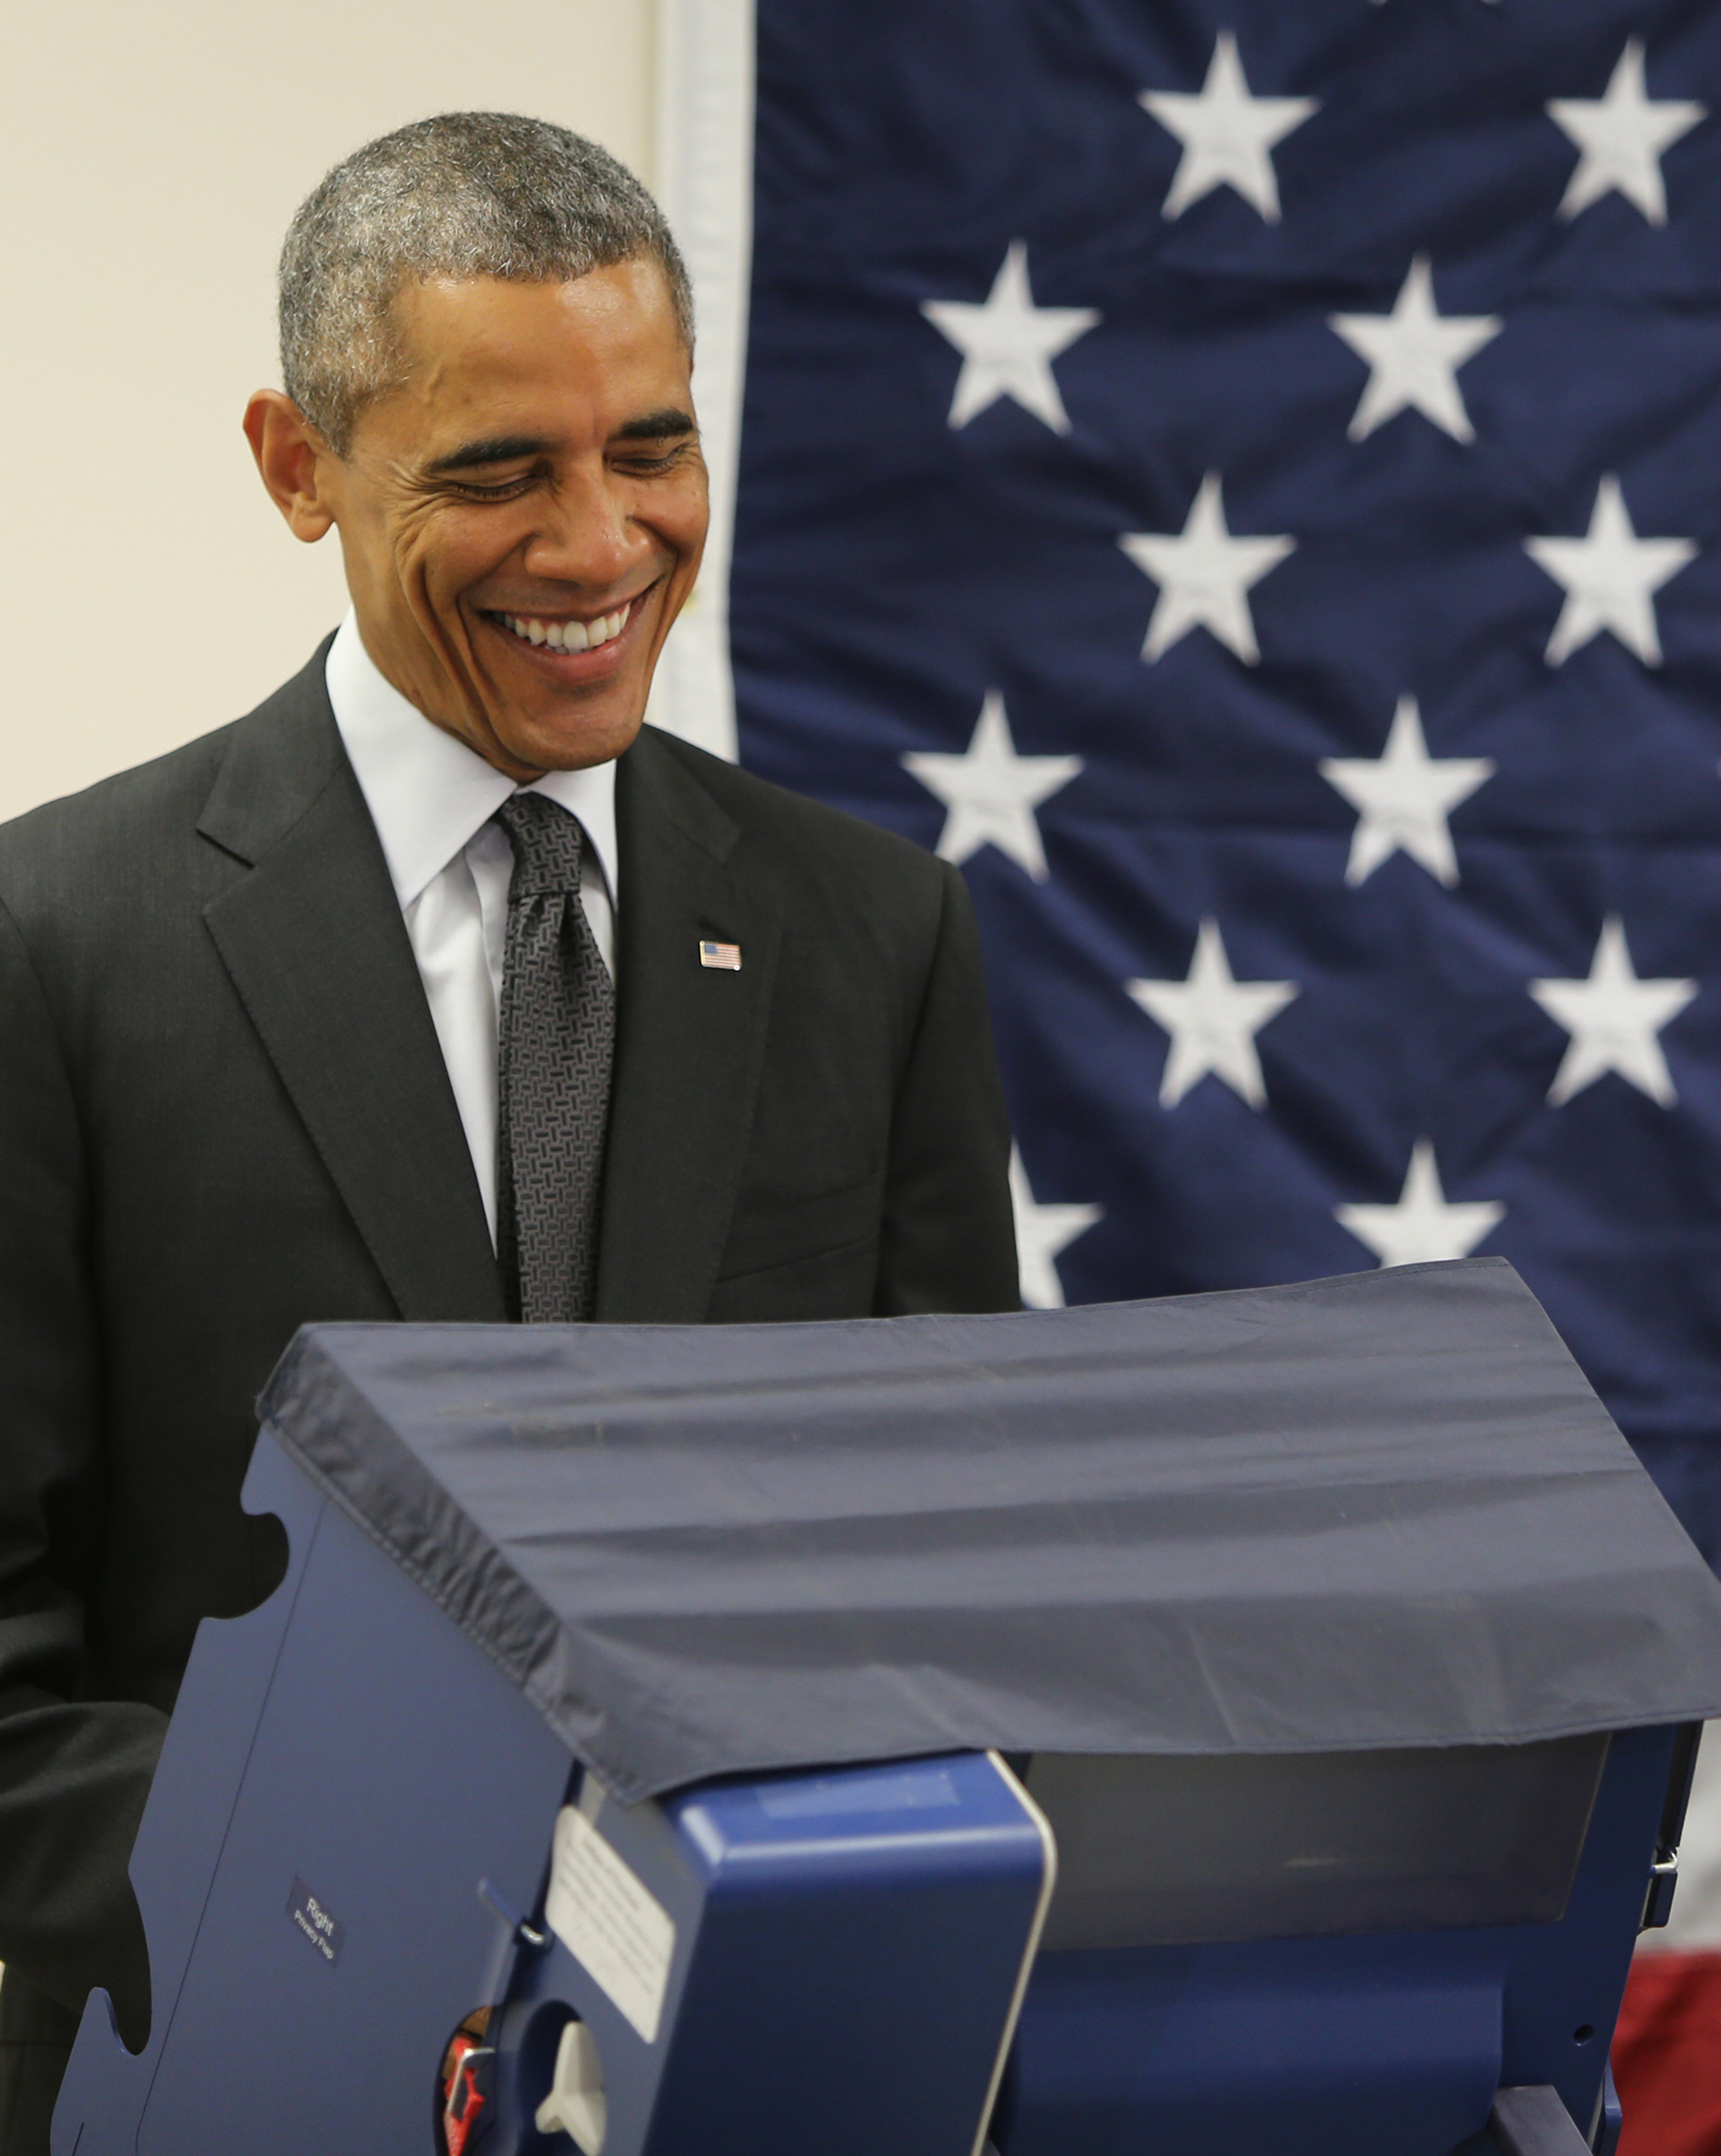 President Barack Obama casts his early votes at Dr. Martin Luther King Community Center in Chicago Monday, Oct. 20, 2014.